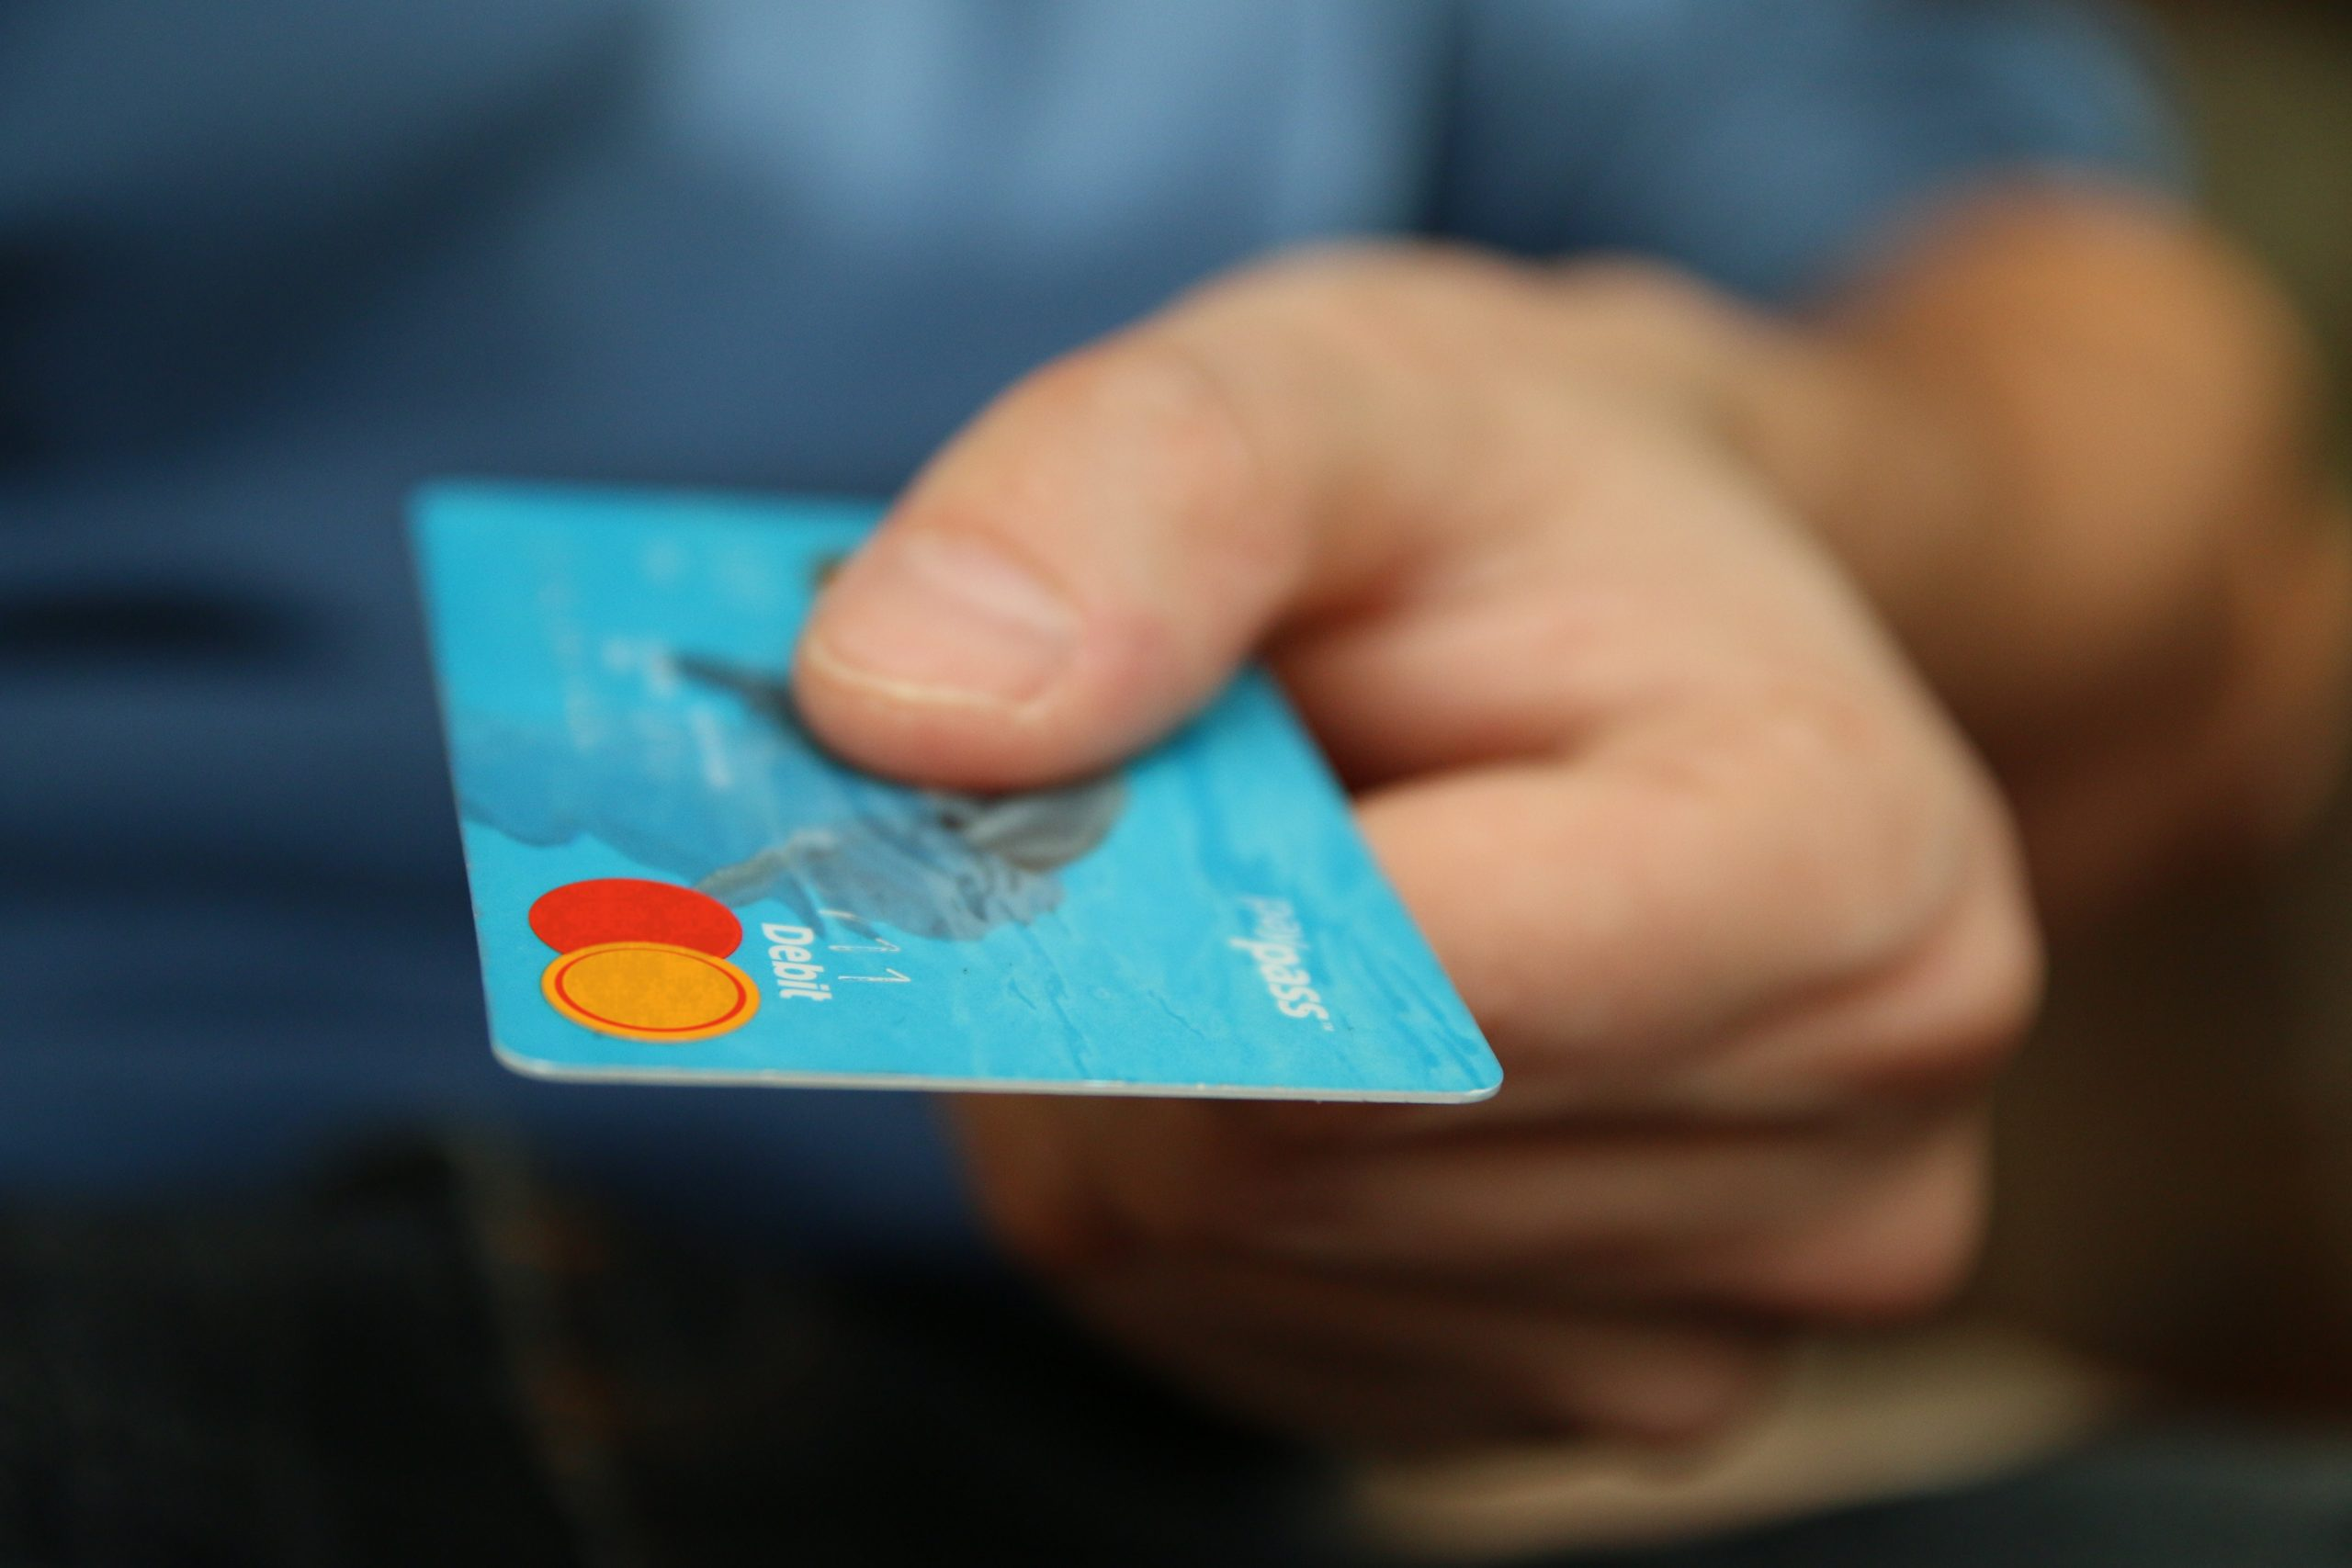 Man holds a credit card